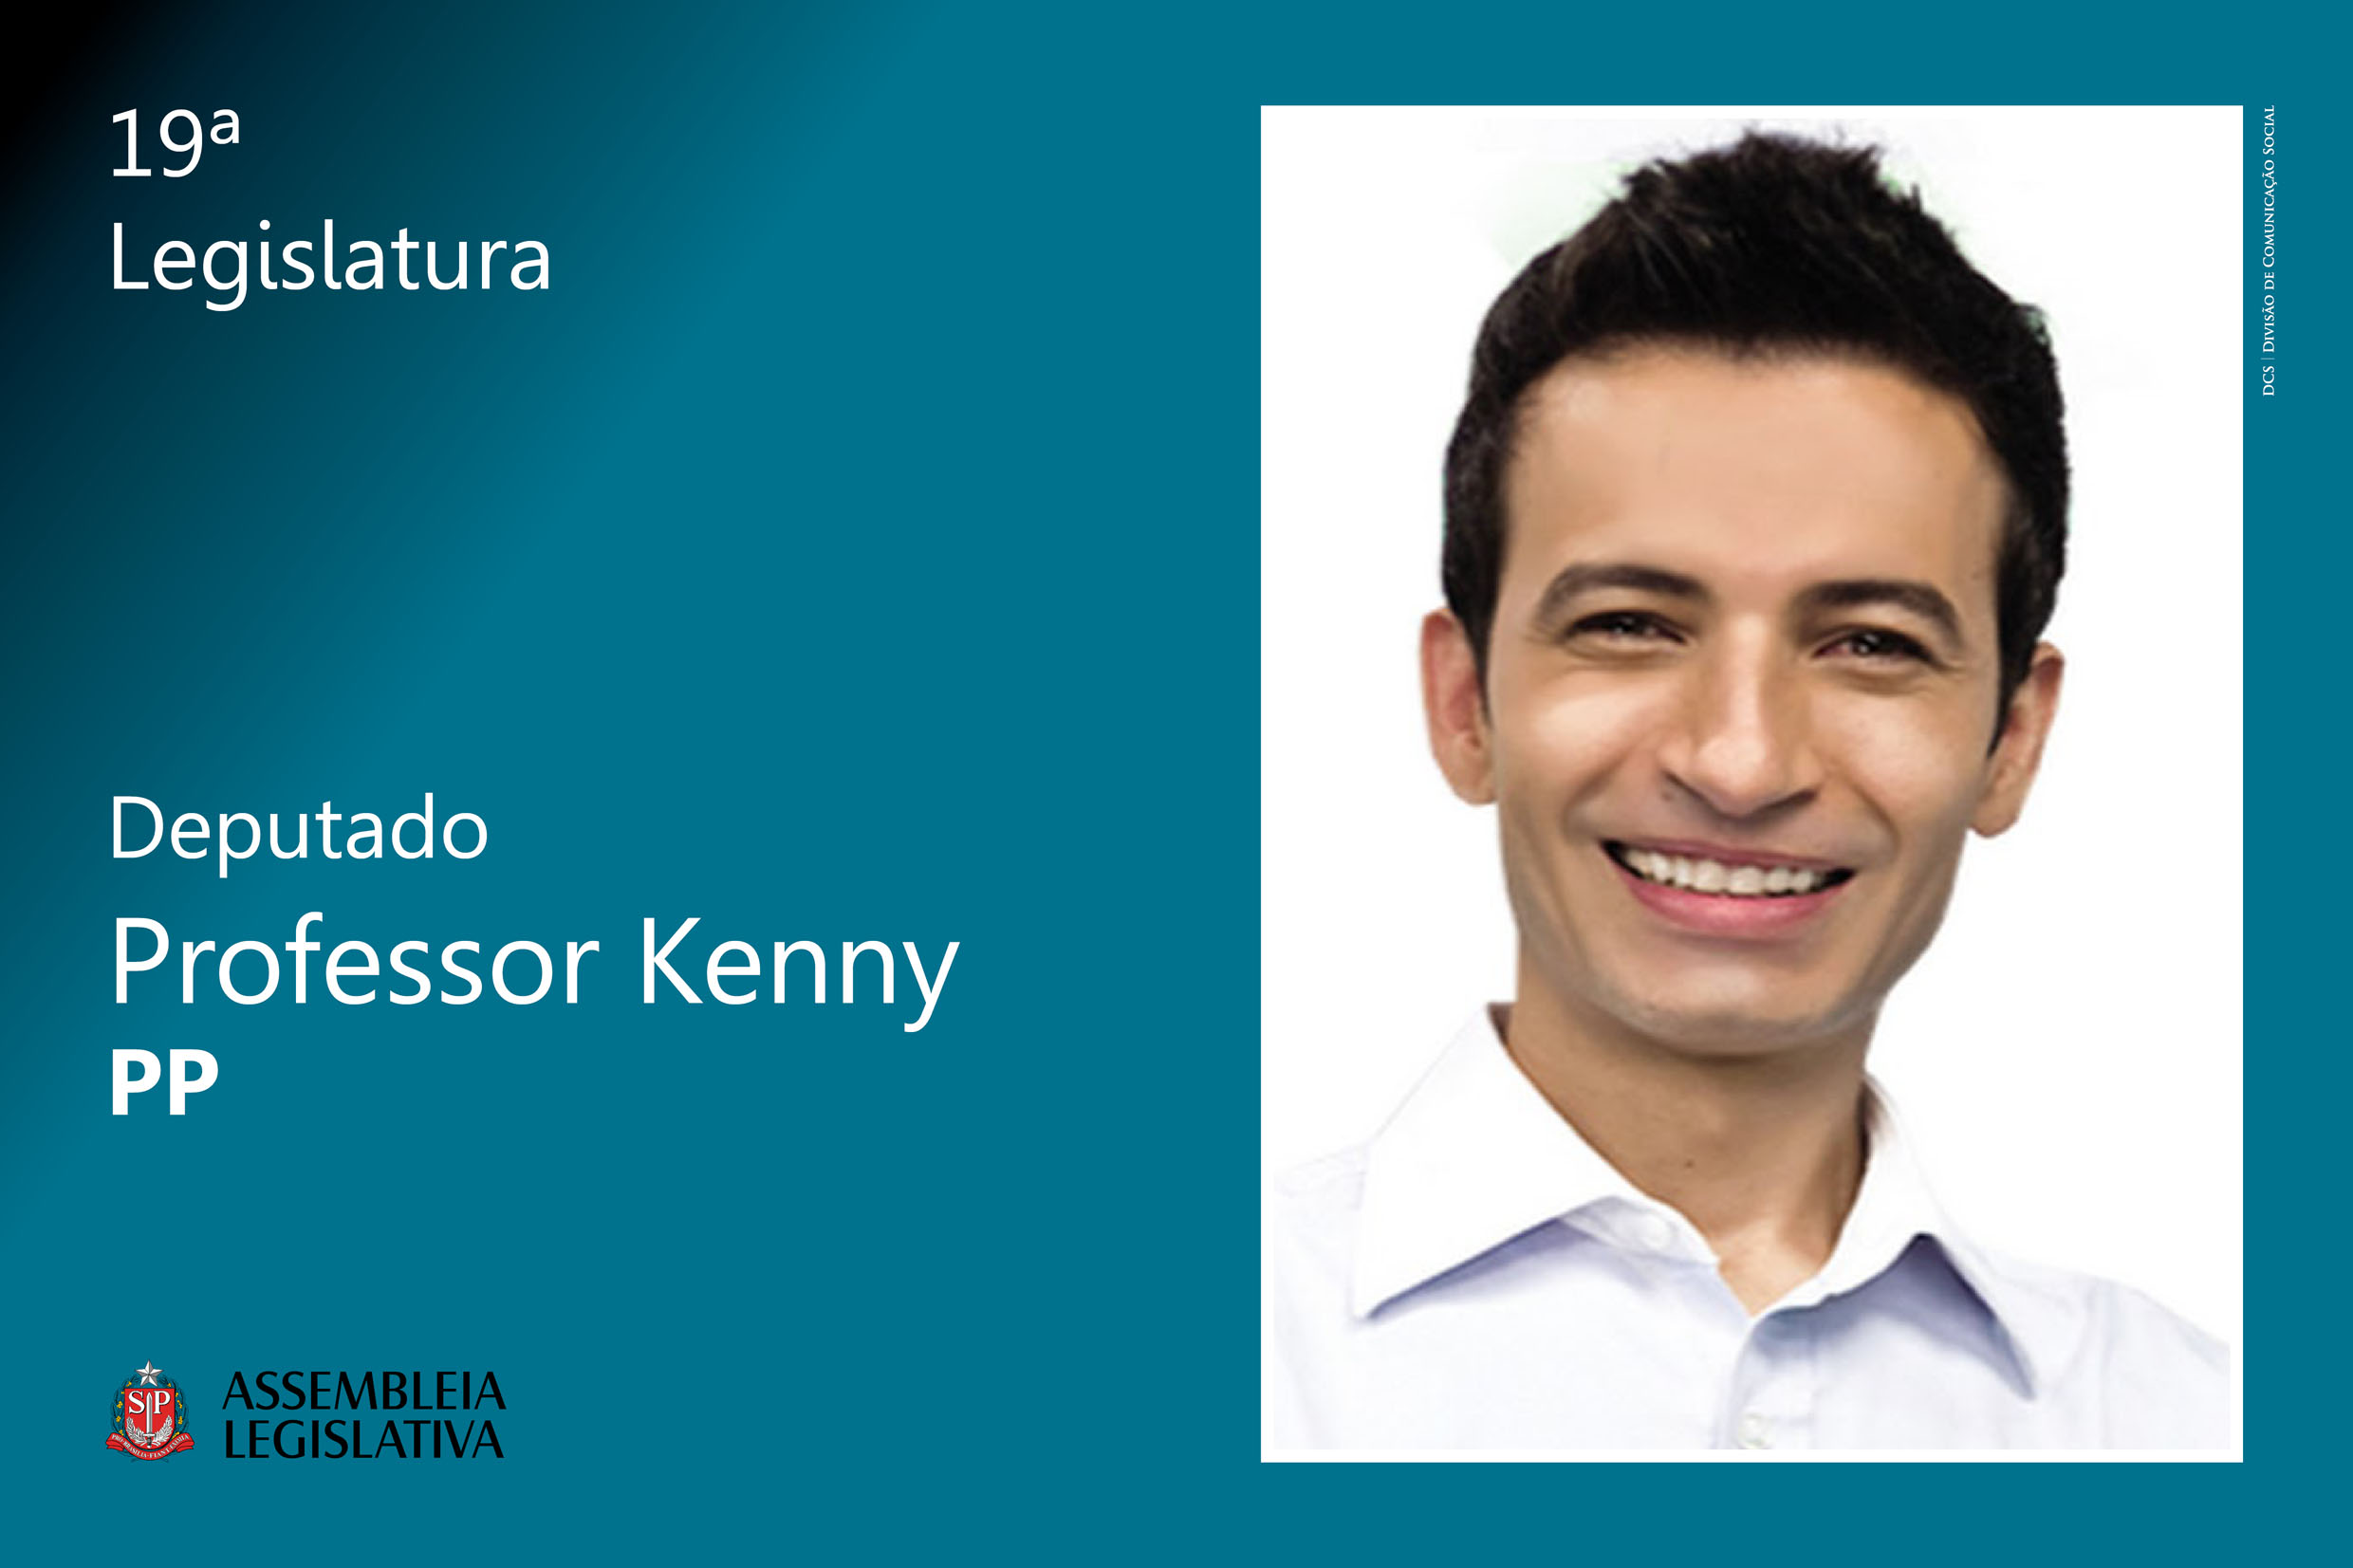 Professor Kenny (PP)<a style='float:right' href='https://www3.al.sp.gov.br/repositorio/noticia/N-03-2019/fg231275.jpg' target=_blank><img src='/_img/material-file-download-white.png' width='14px' alt='Clique para baixar a imagem'></a>